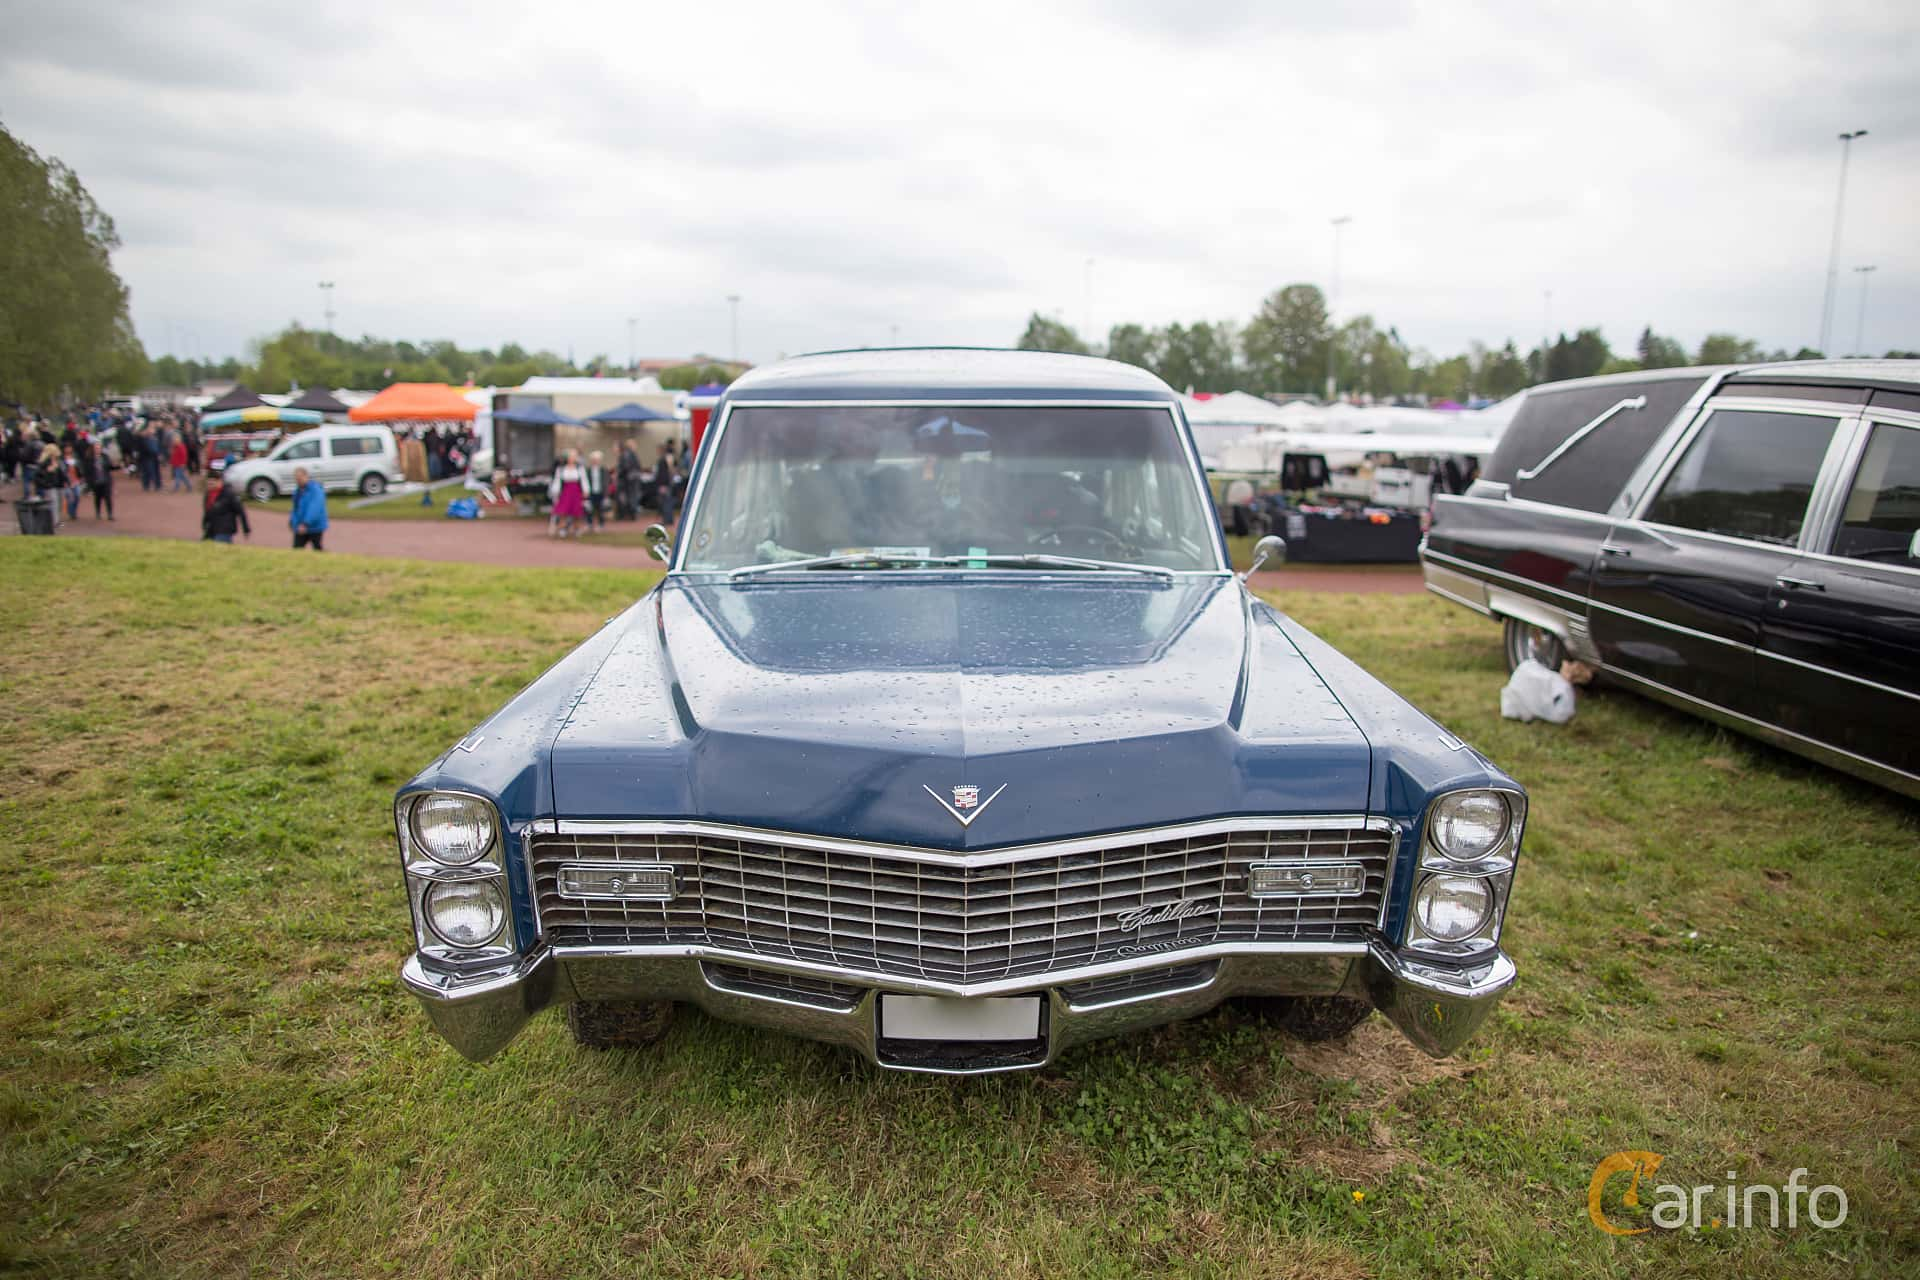 2 images of Cadillac Seventy-Five Commercial Chis 7.0 V8 OHV ...